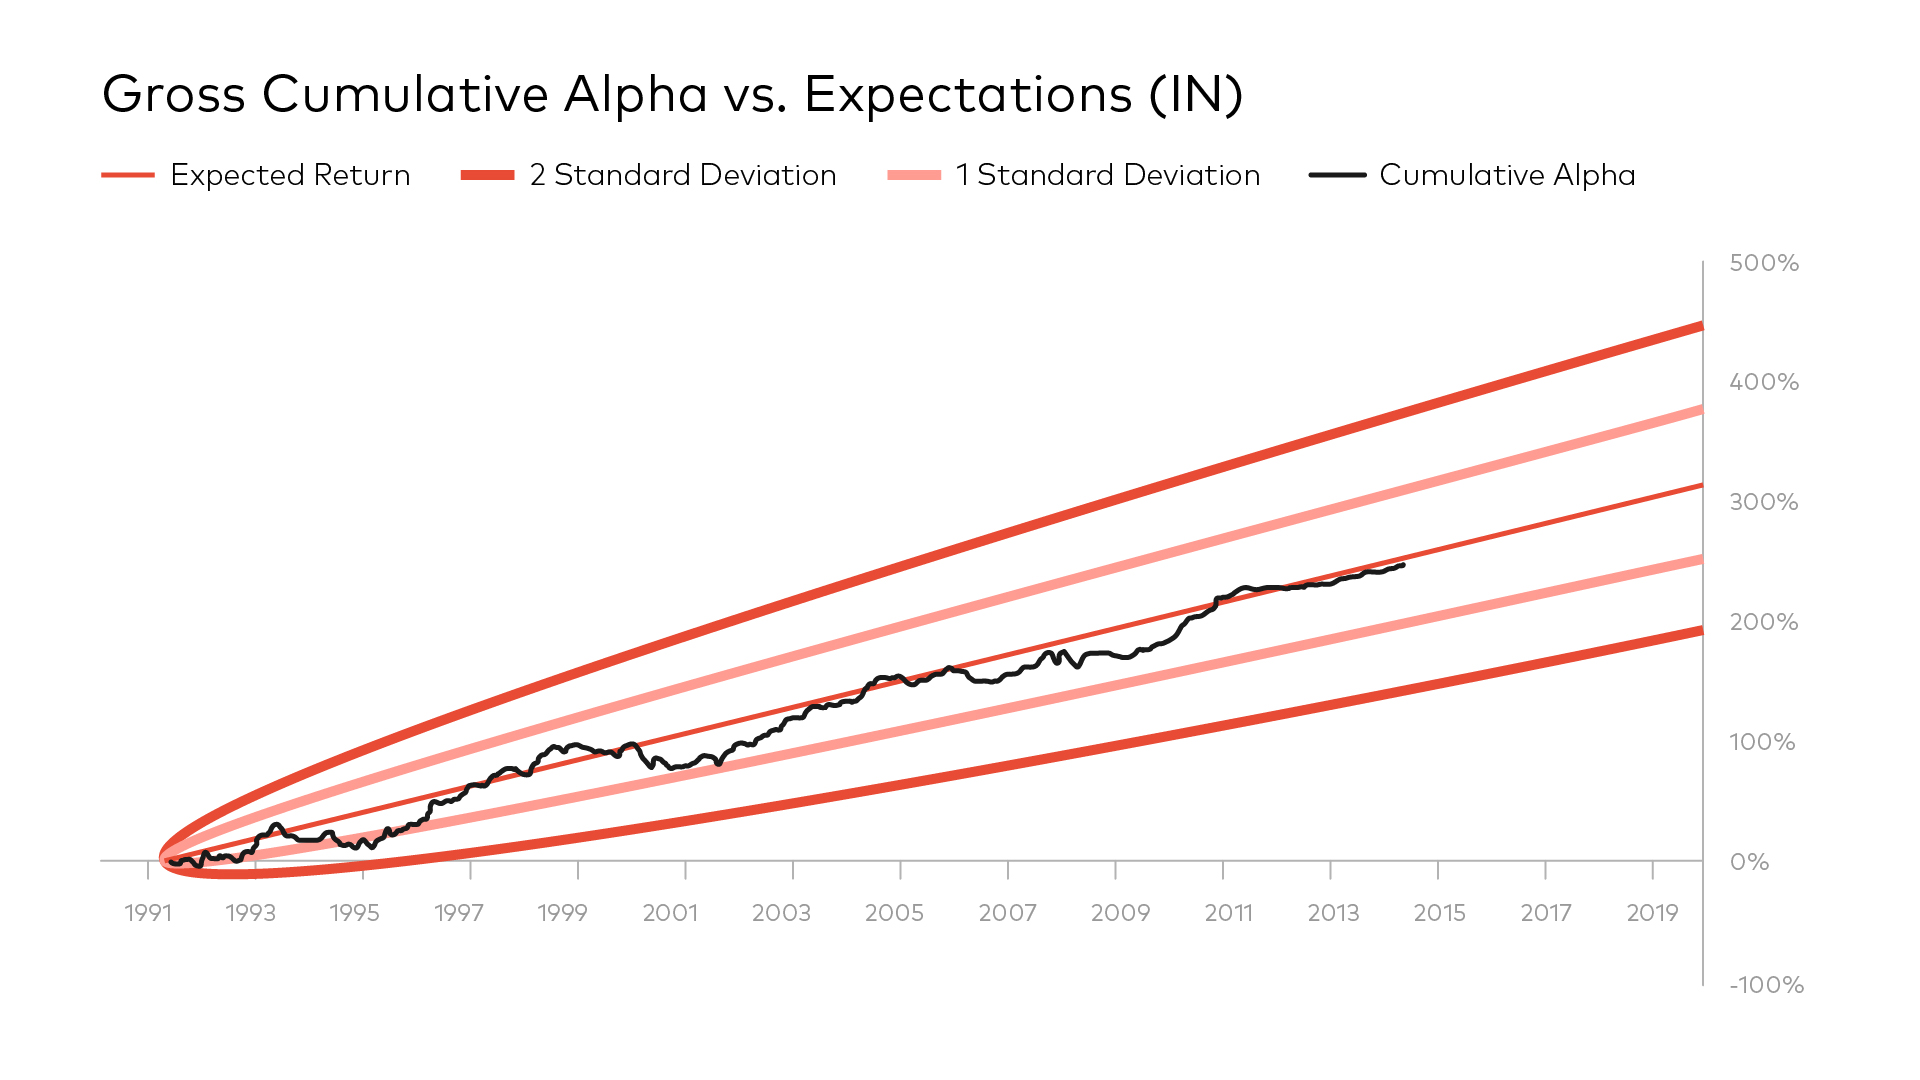 Gross Cumulative Alpha vs. Expectations (IN)